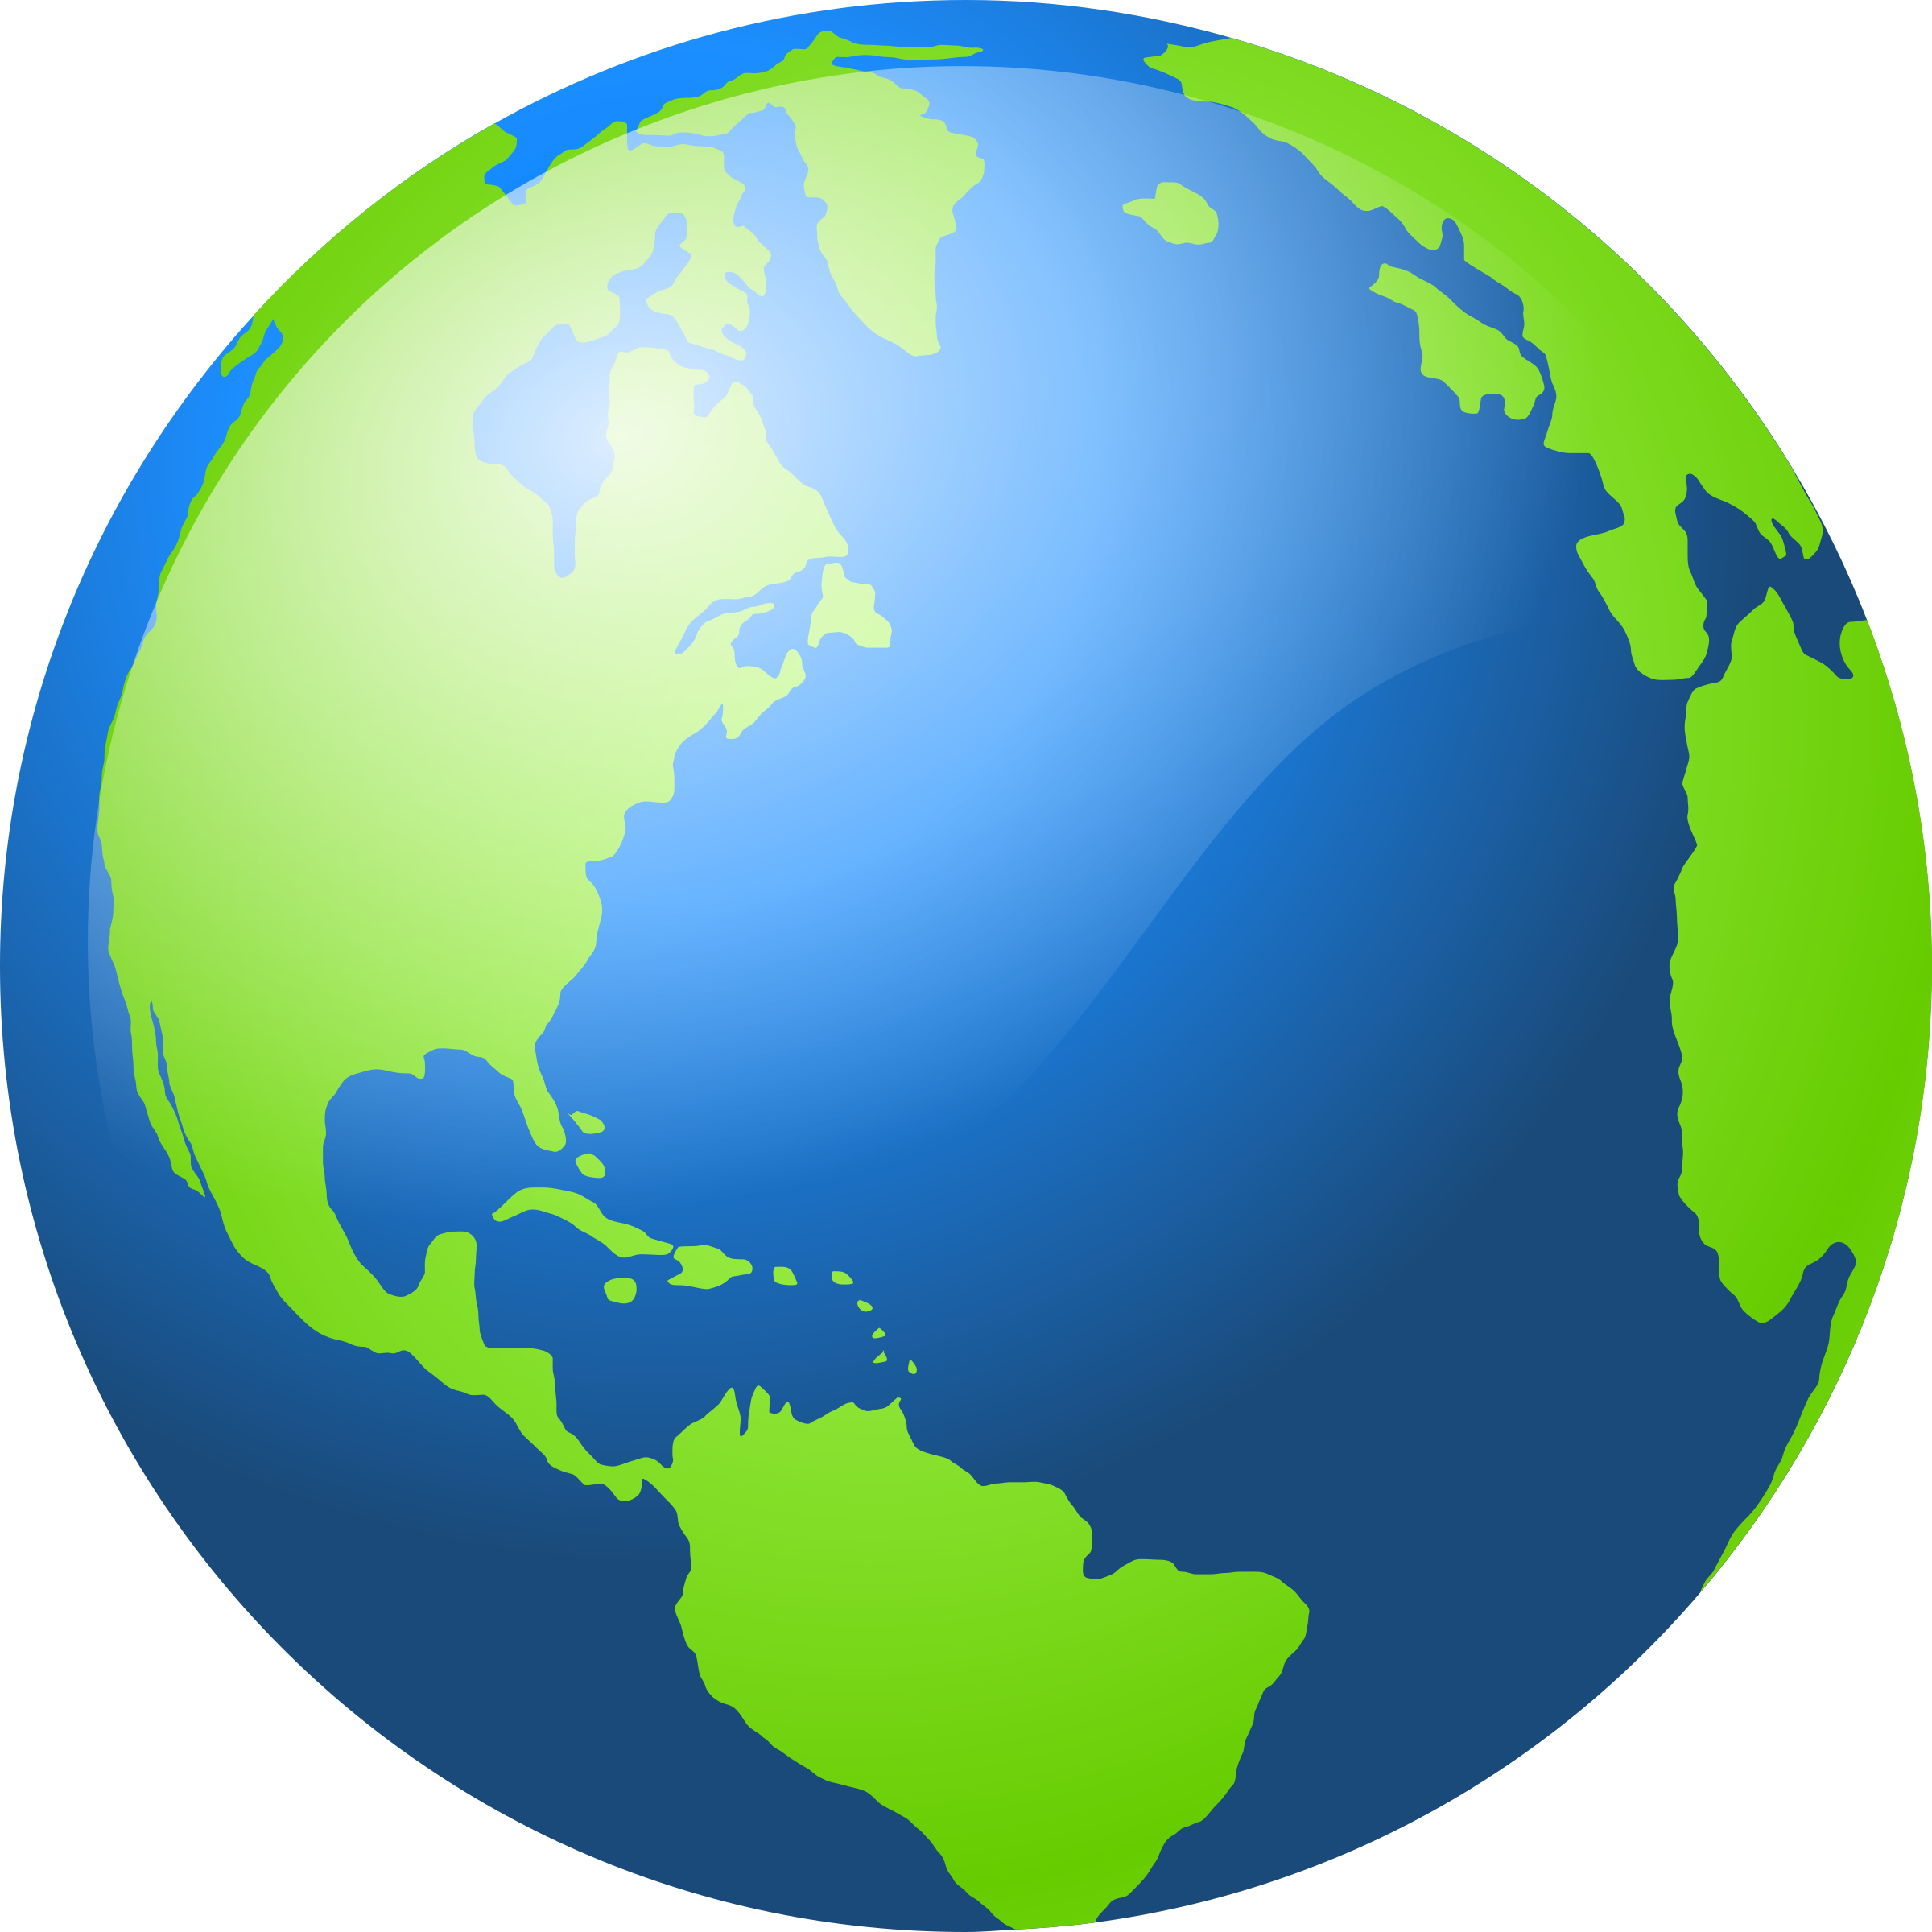 Earth by @barretr, An Earth icon., on @openclipart.